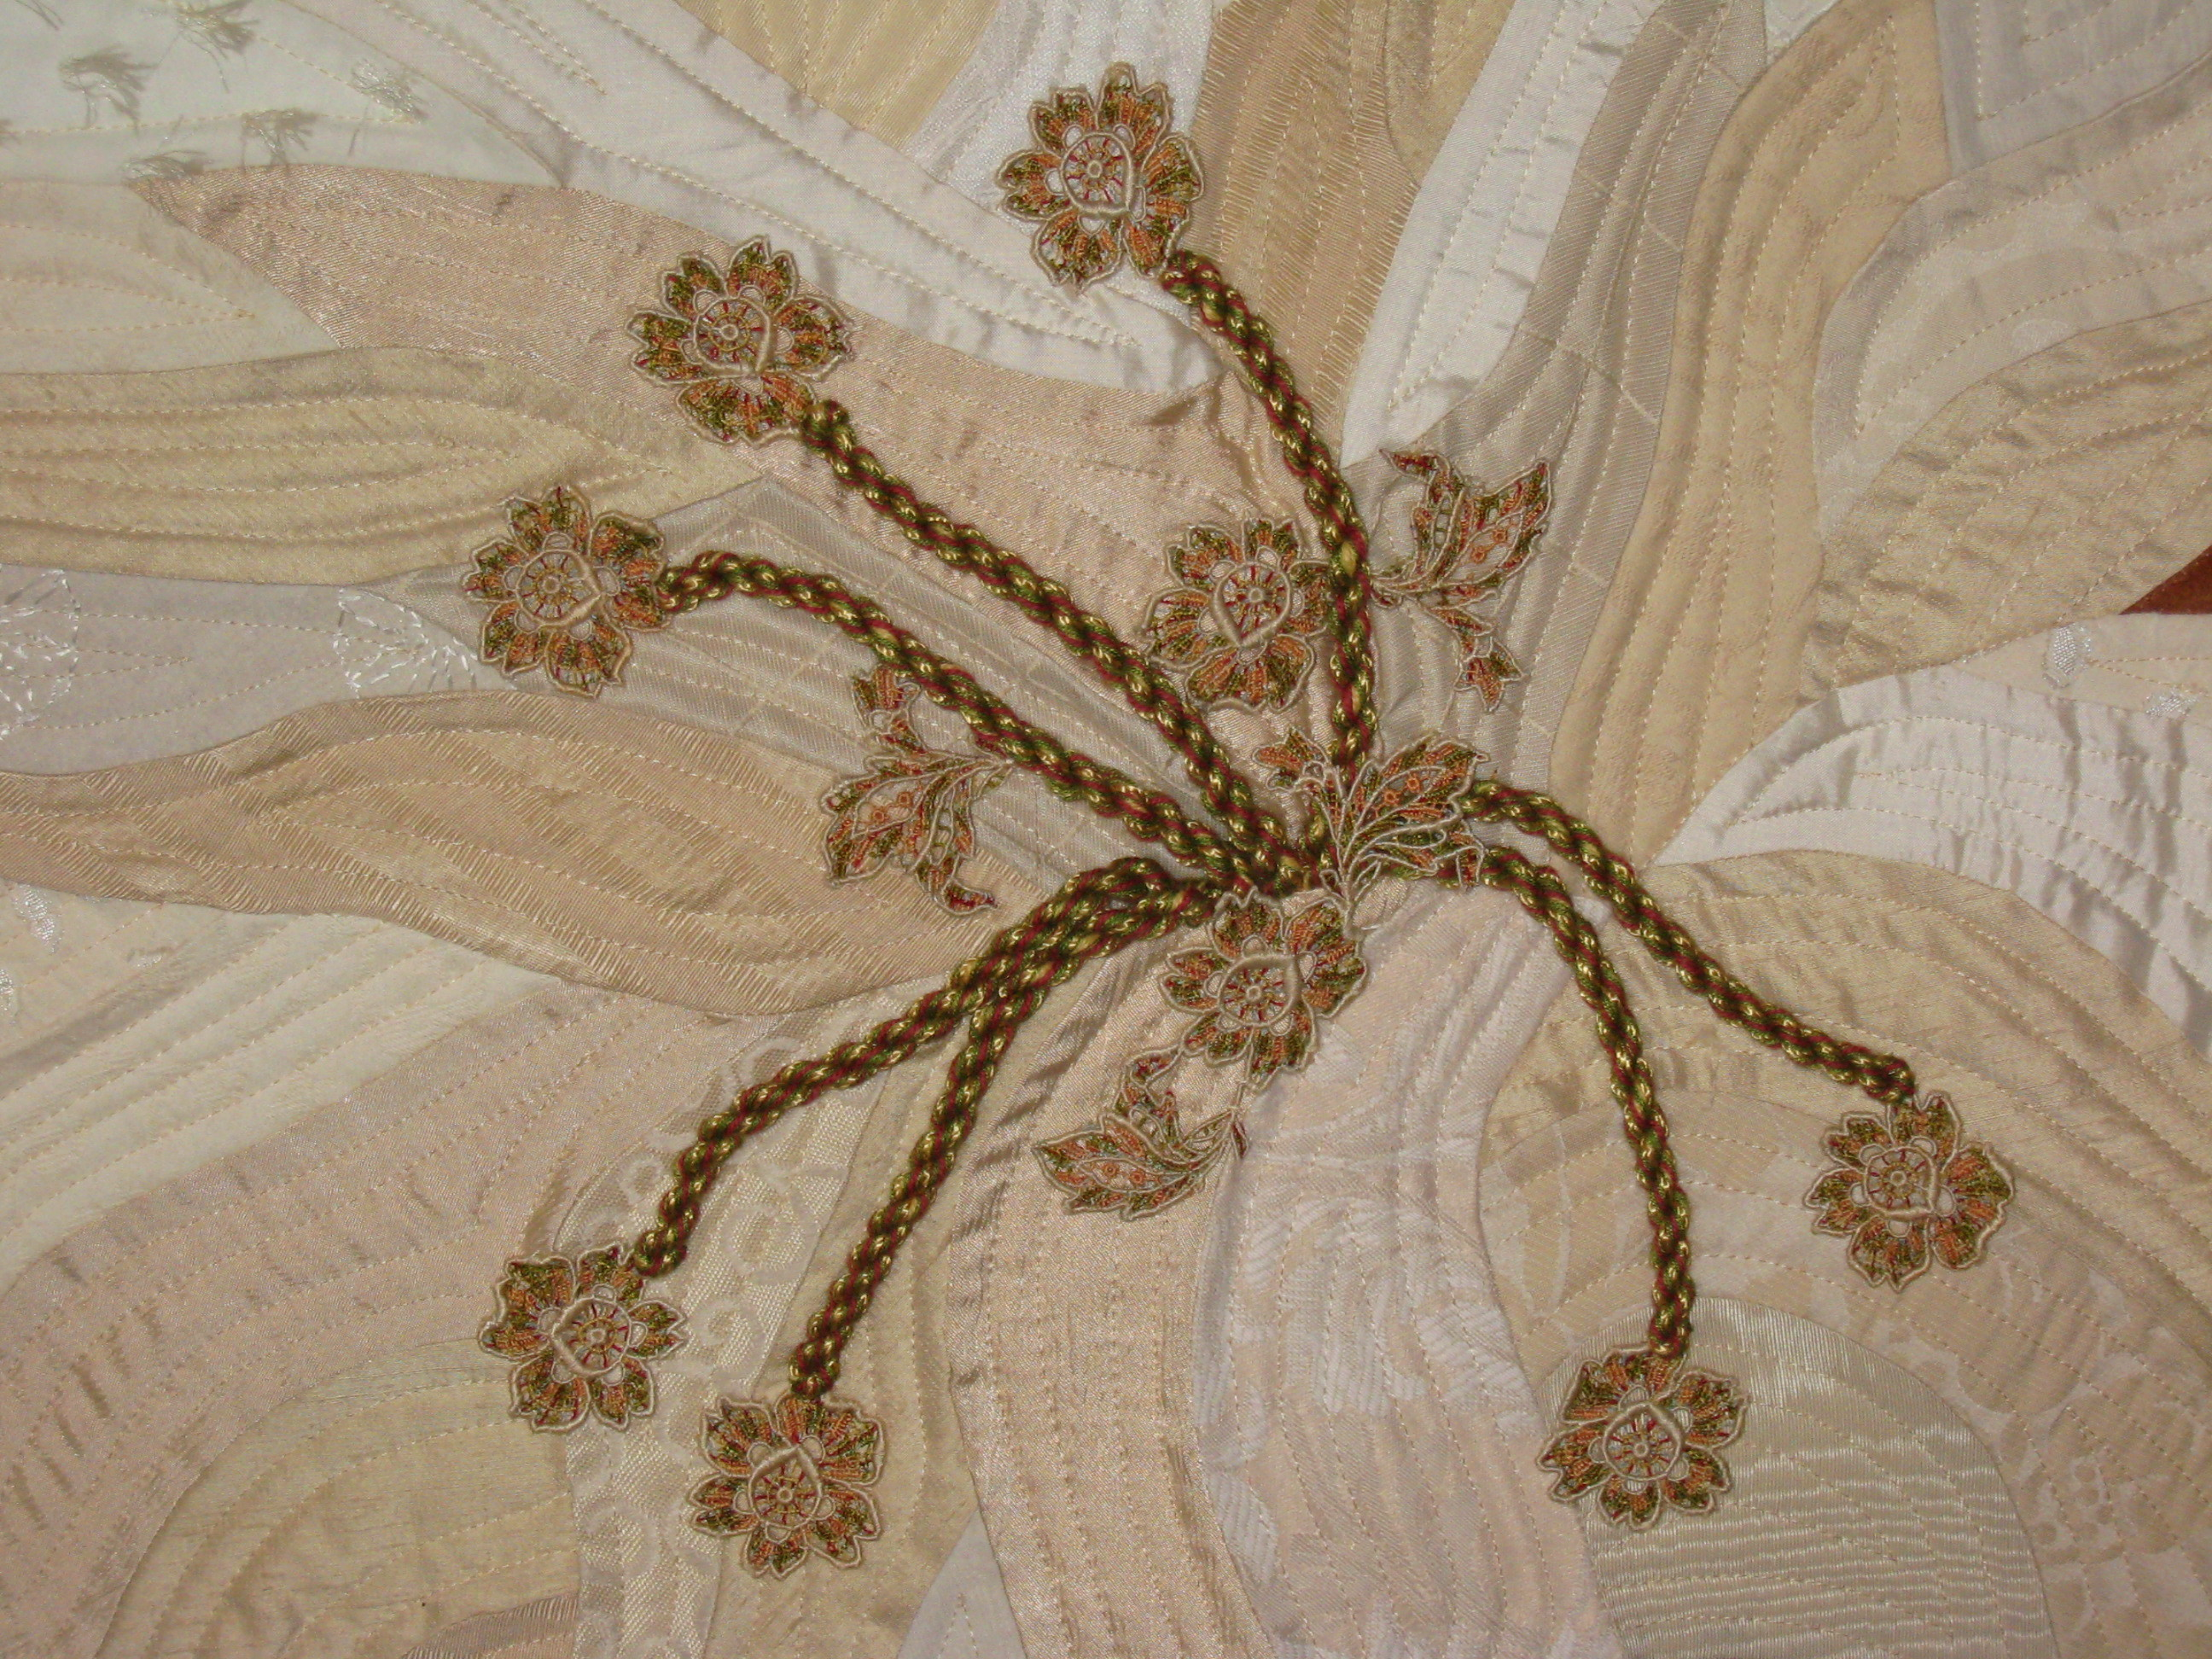 Lily center with antique tatting